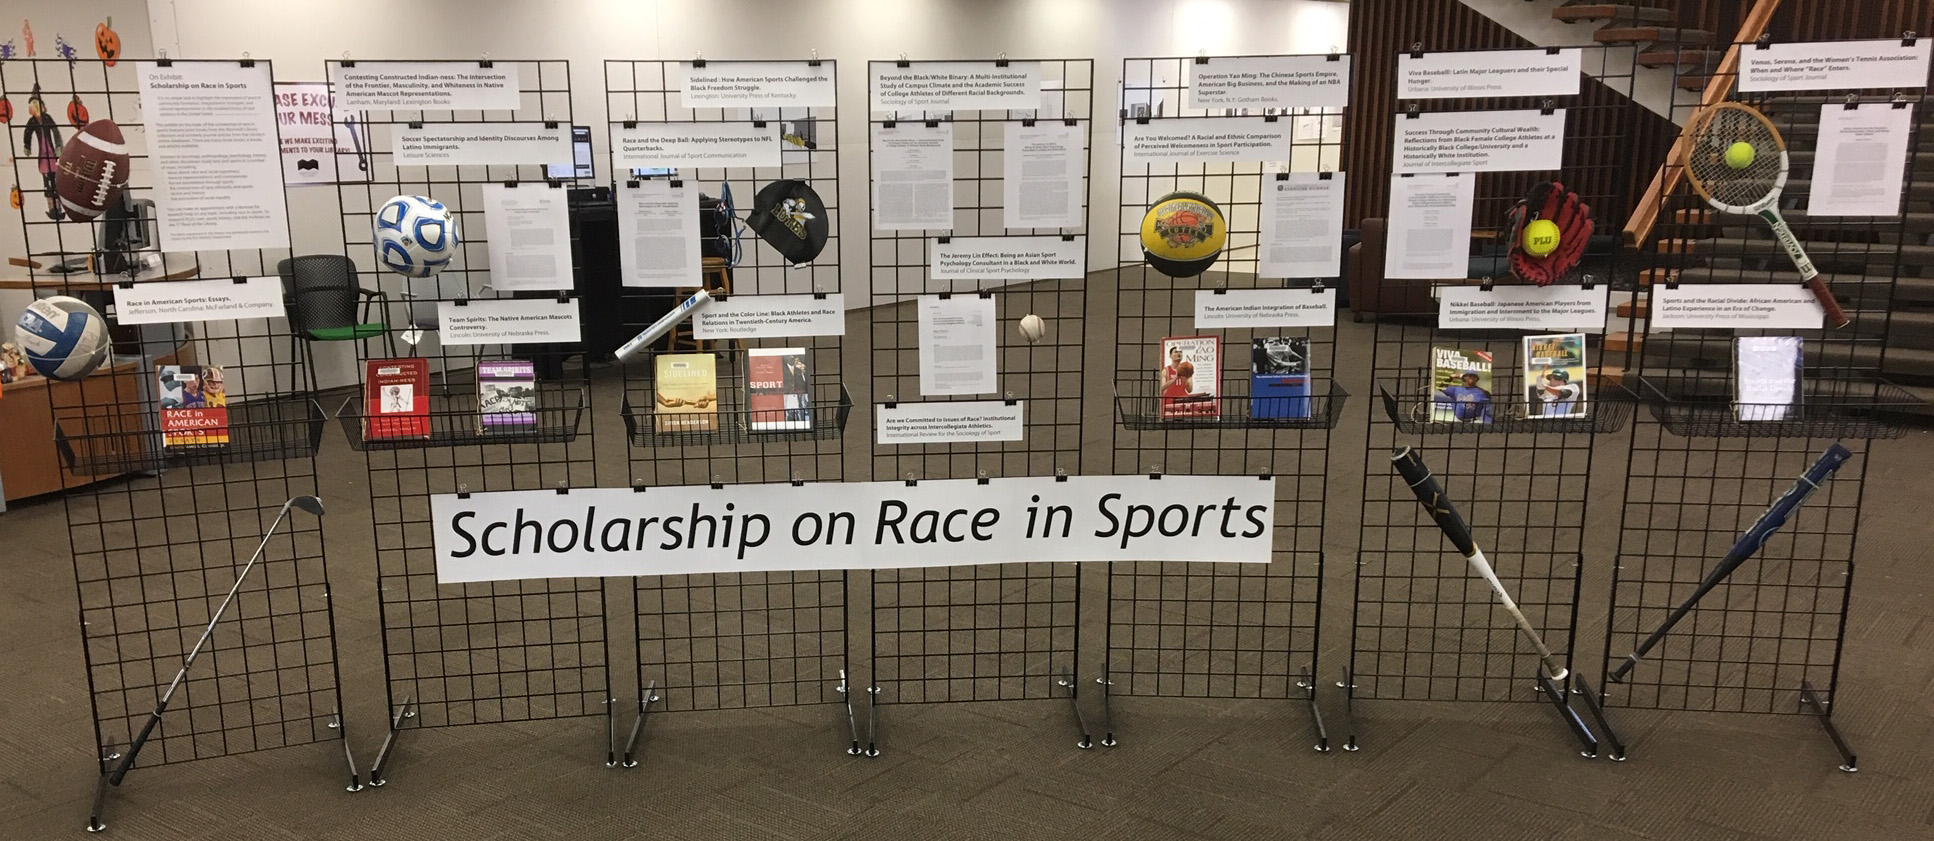 Scholarship on Race in Sports exhibit